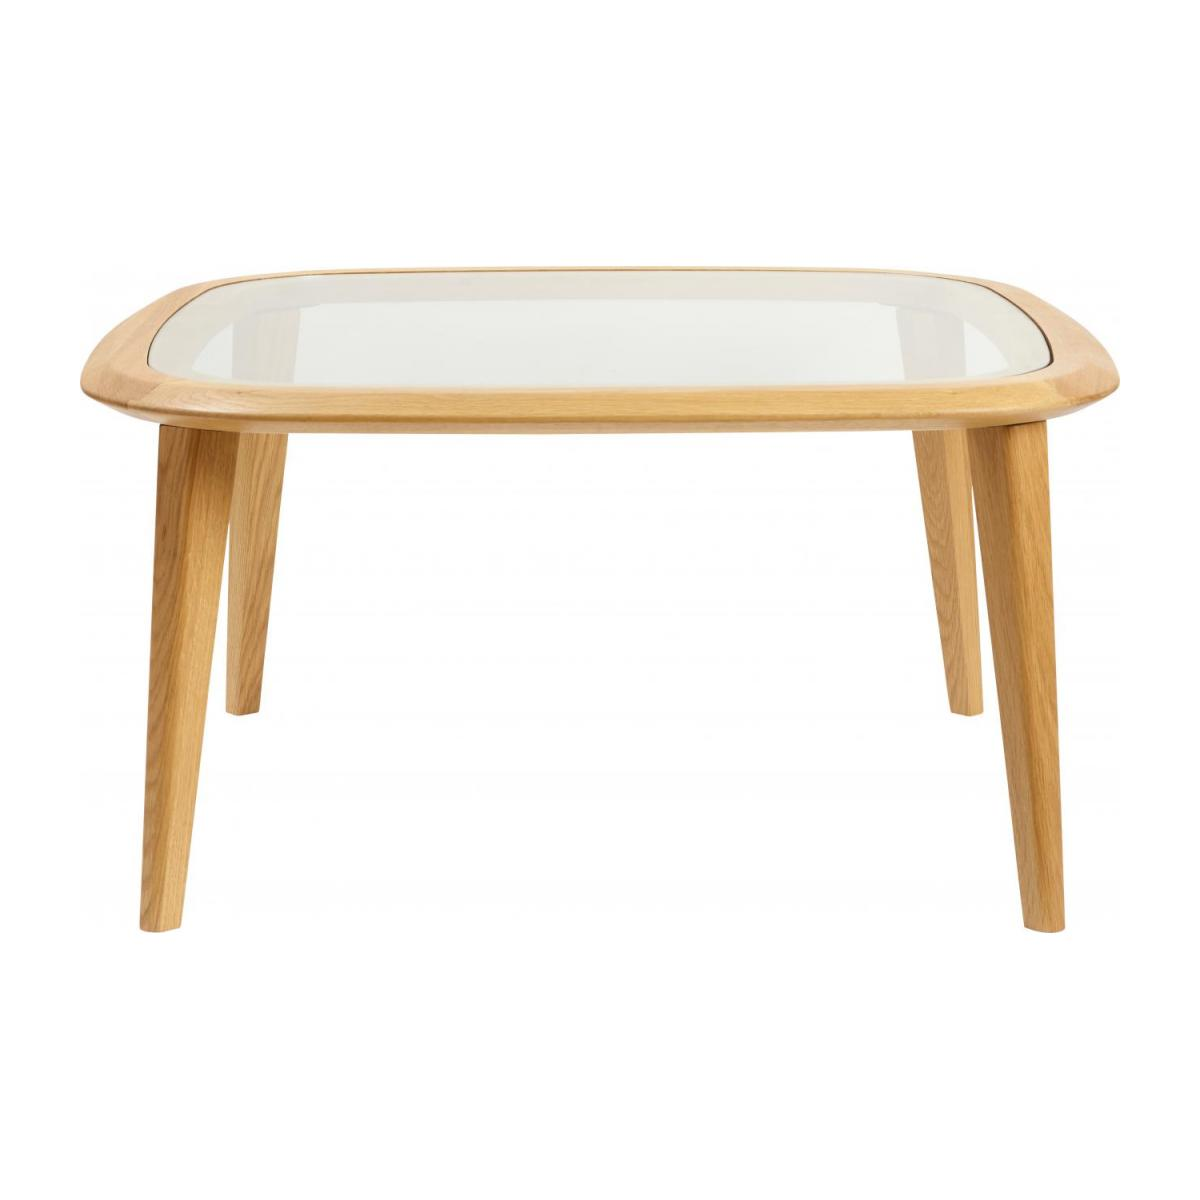 Table basse - Chêne et Verre - Design by Habitat Design Studio n°3